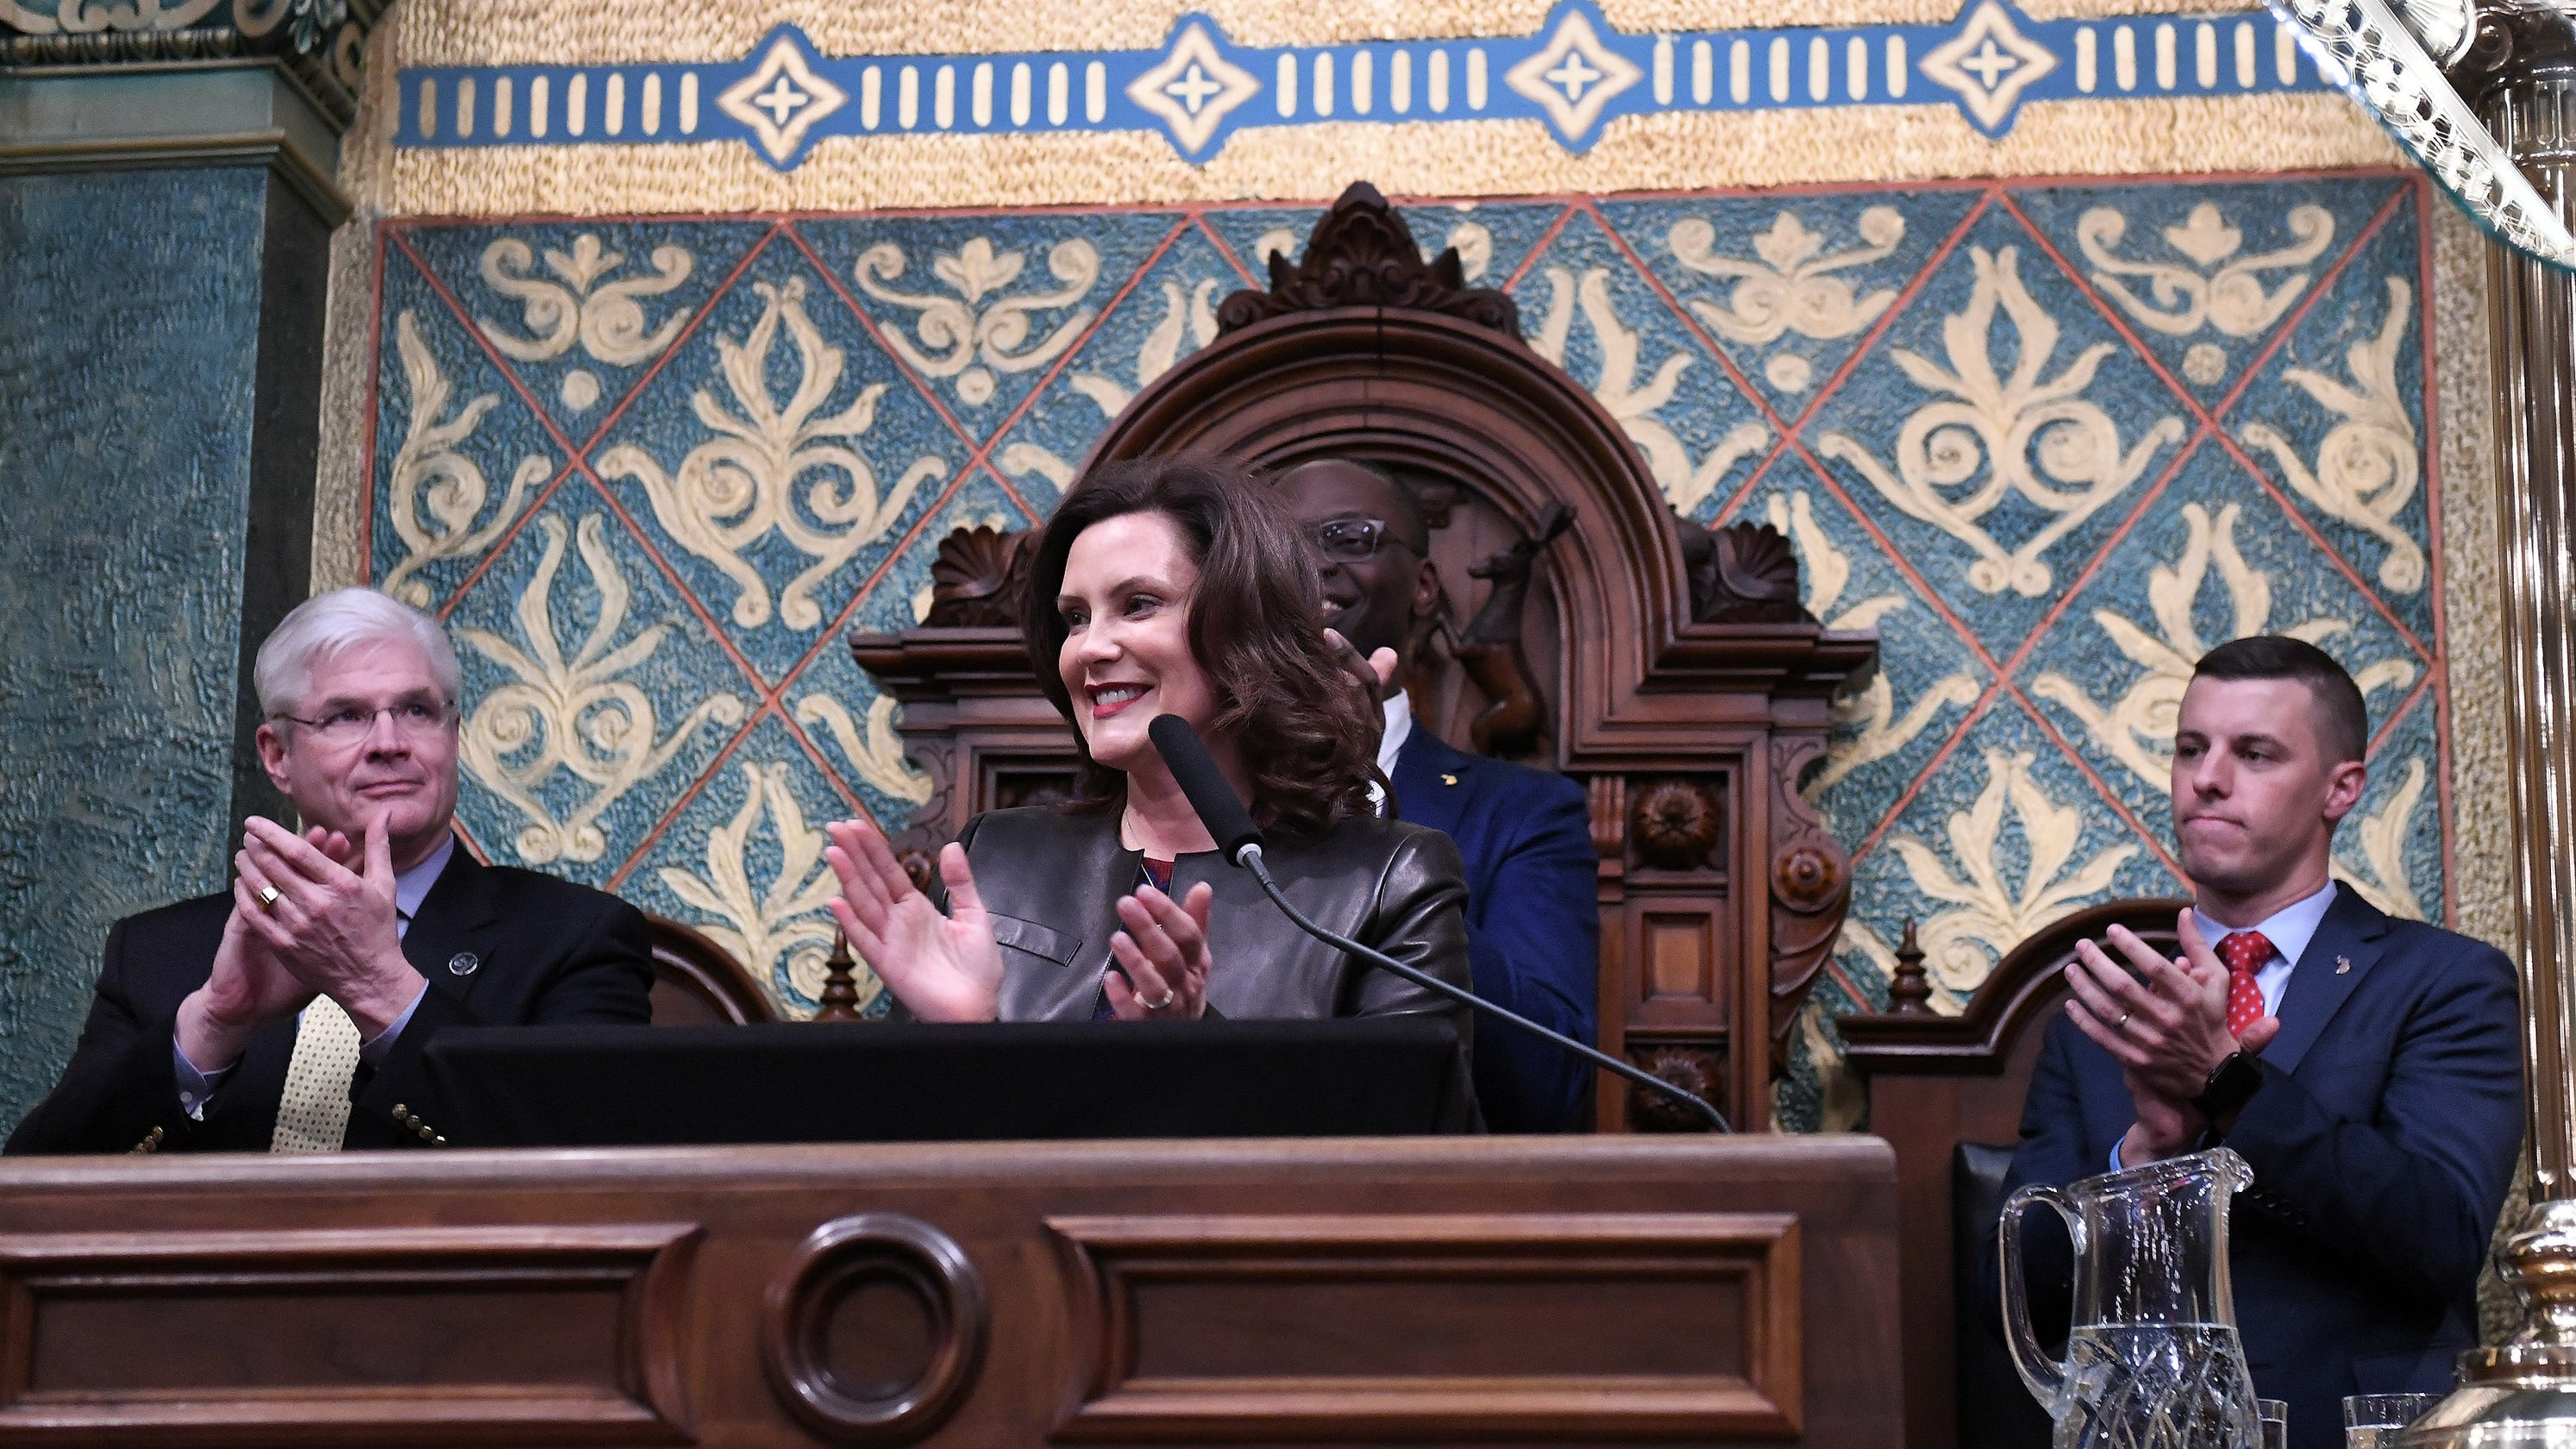 Opinion: Whitmer's orders are unconstitutional no matter how she frames it